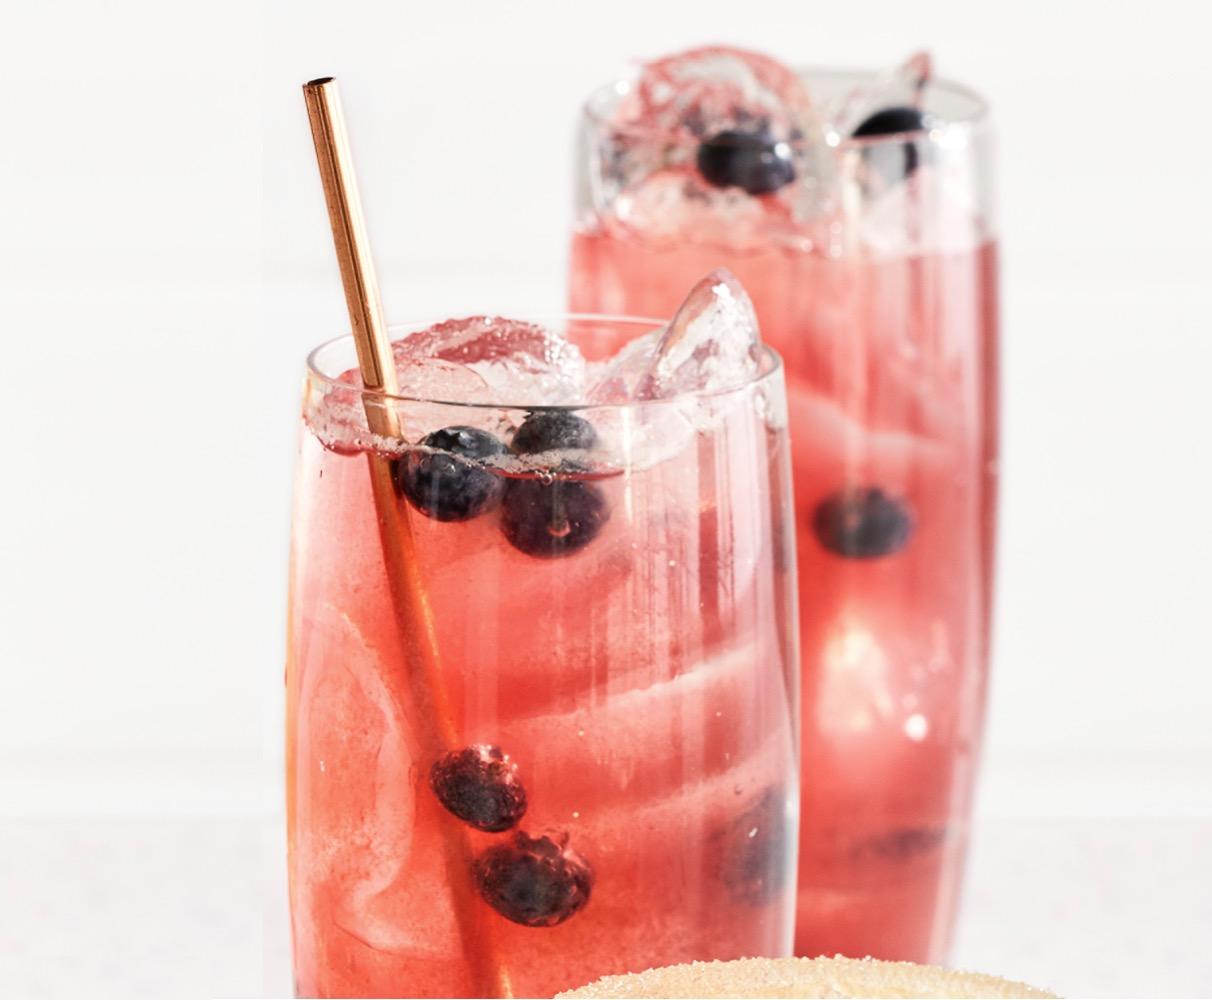 Blueberry-Bourbon Shrub Allrecipes Magazine